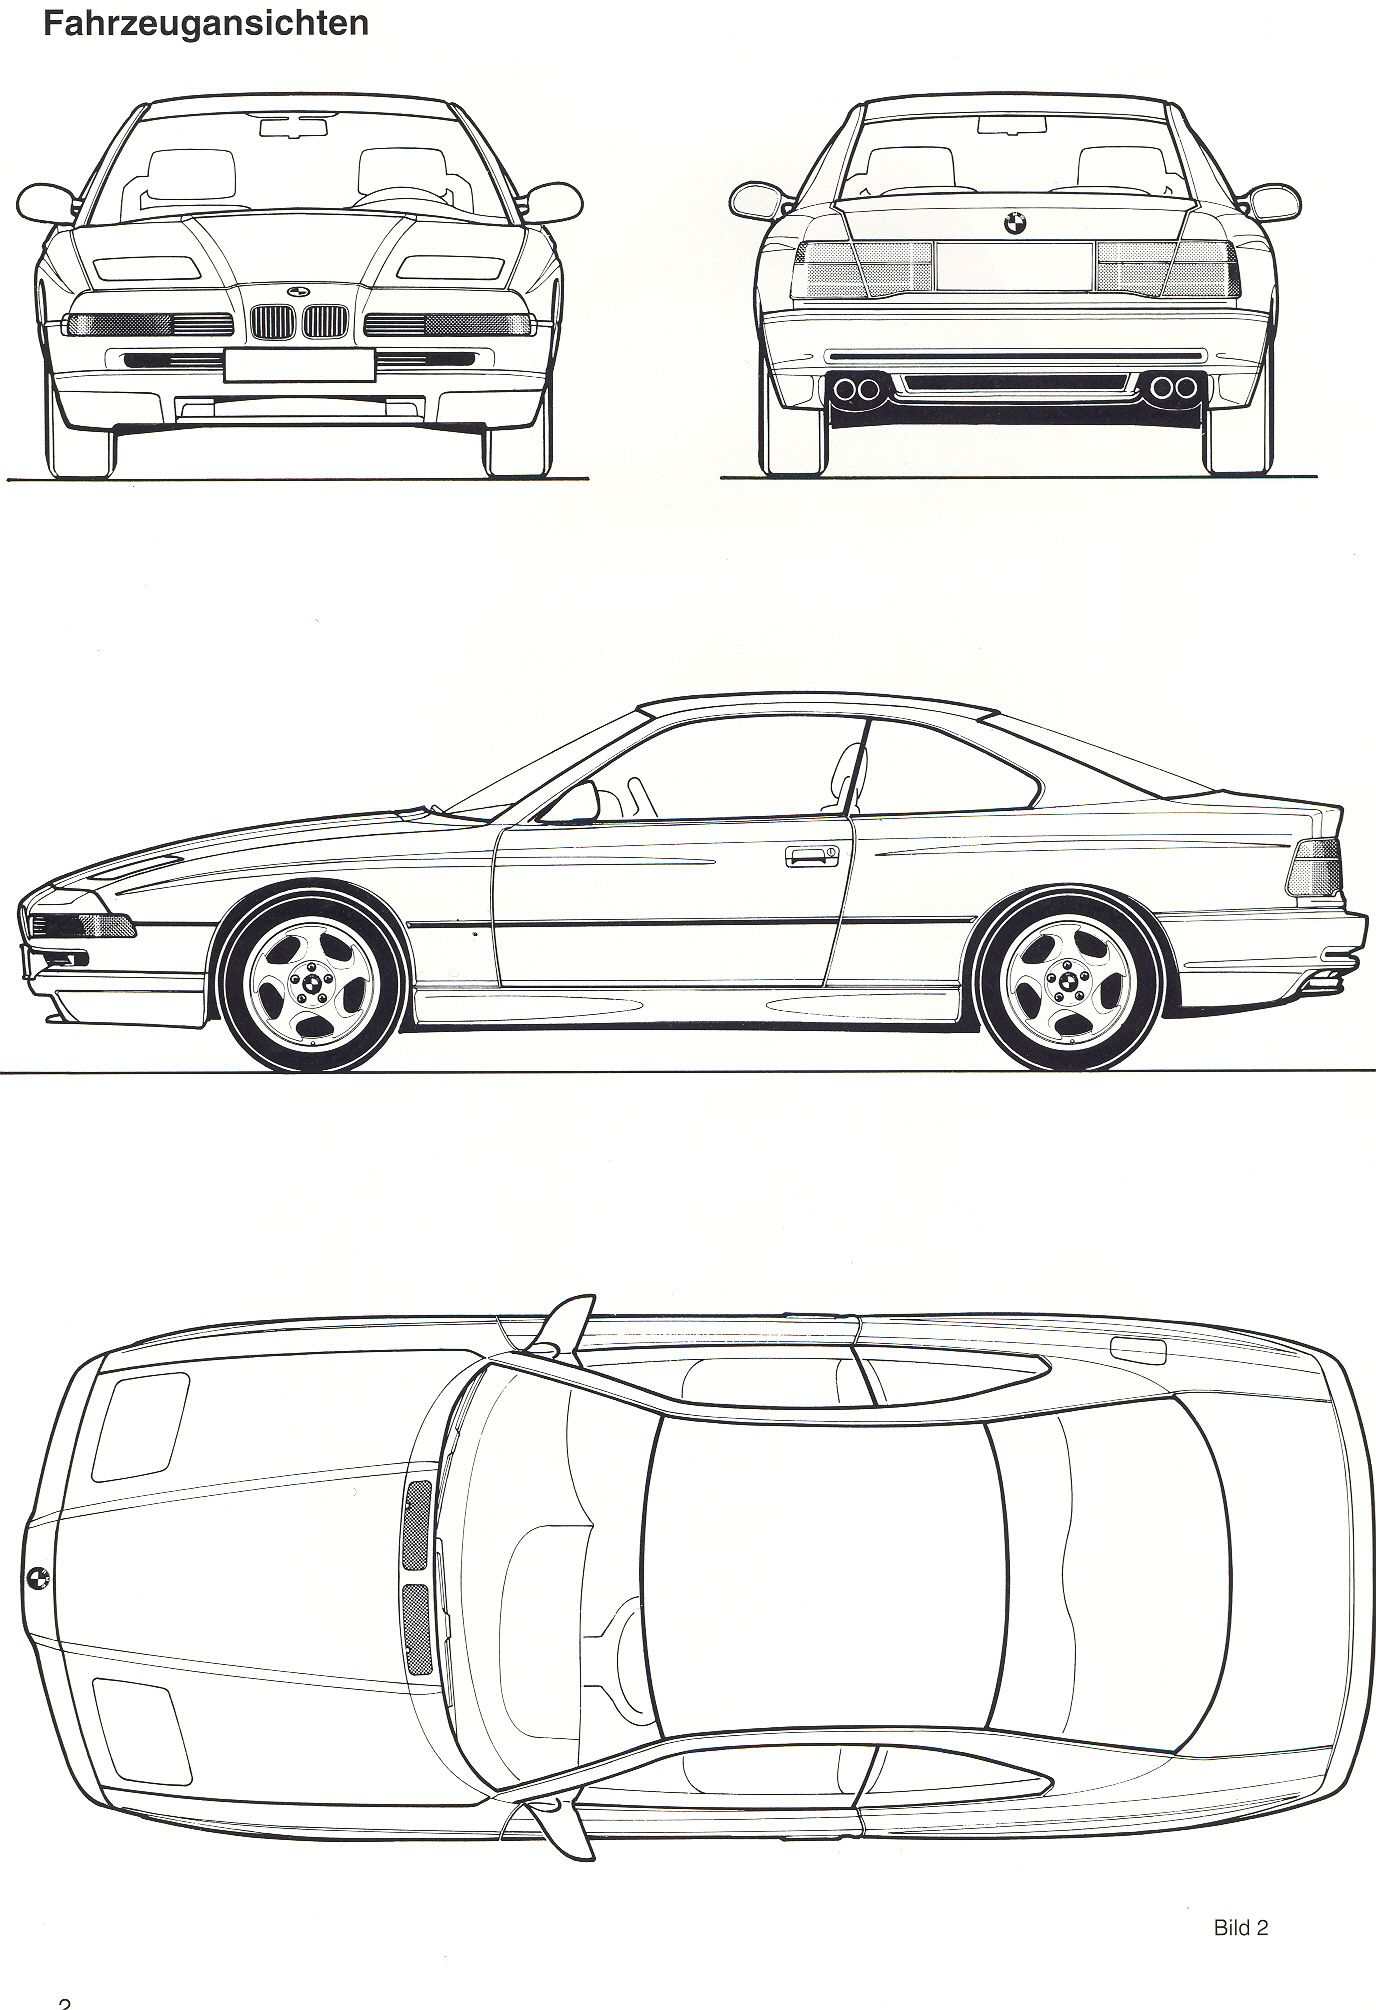 Beamer Jpg 1376 2010 Cars Coloring Pages Technical